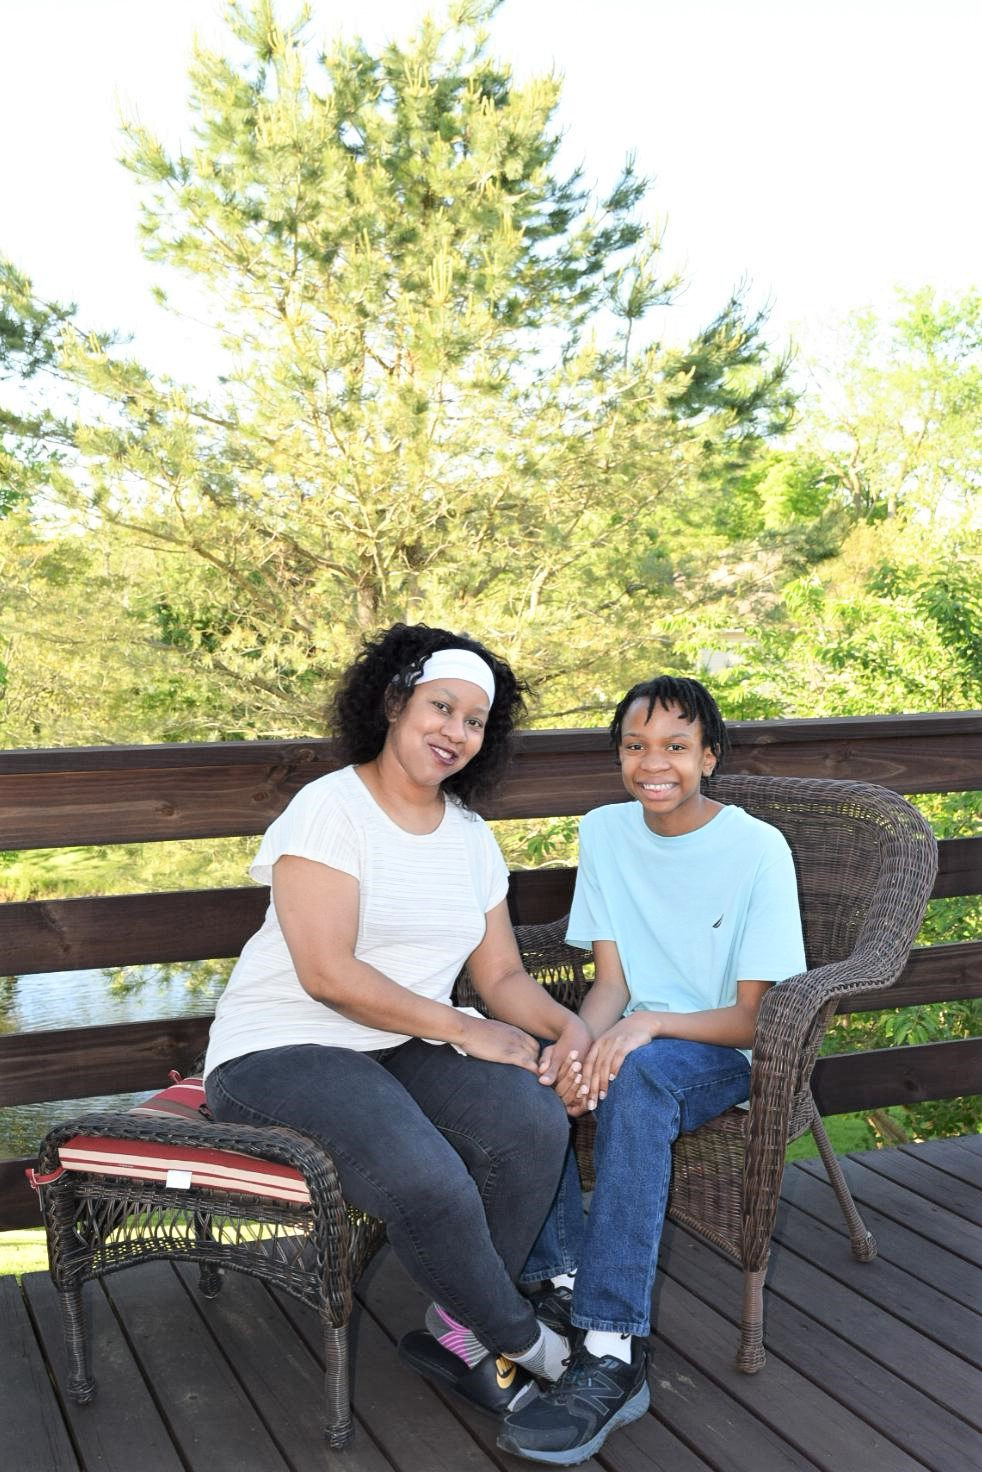 Keeping Your Adolescents Healthy and Safe This Summer